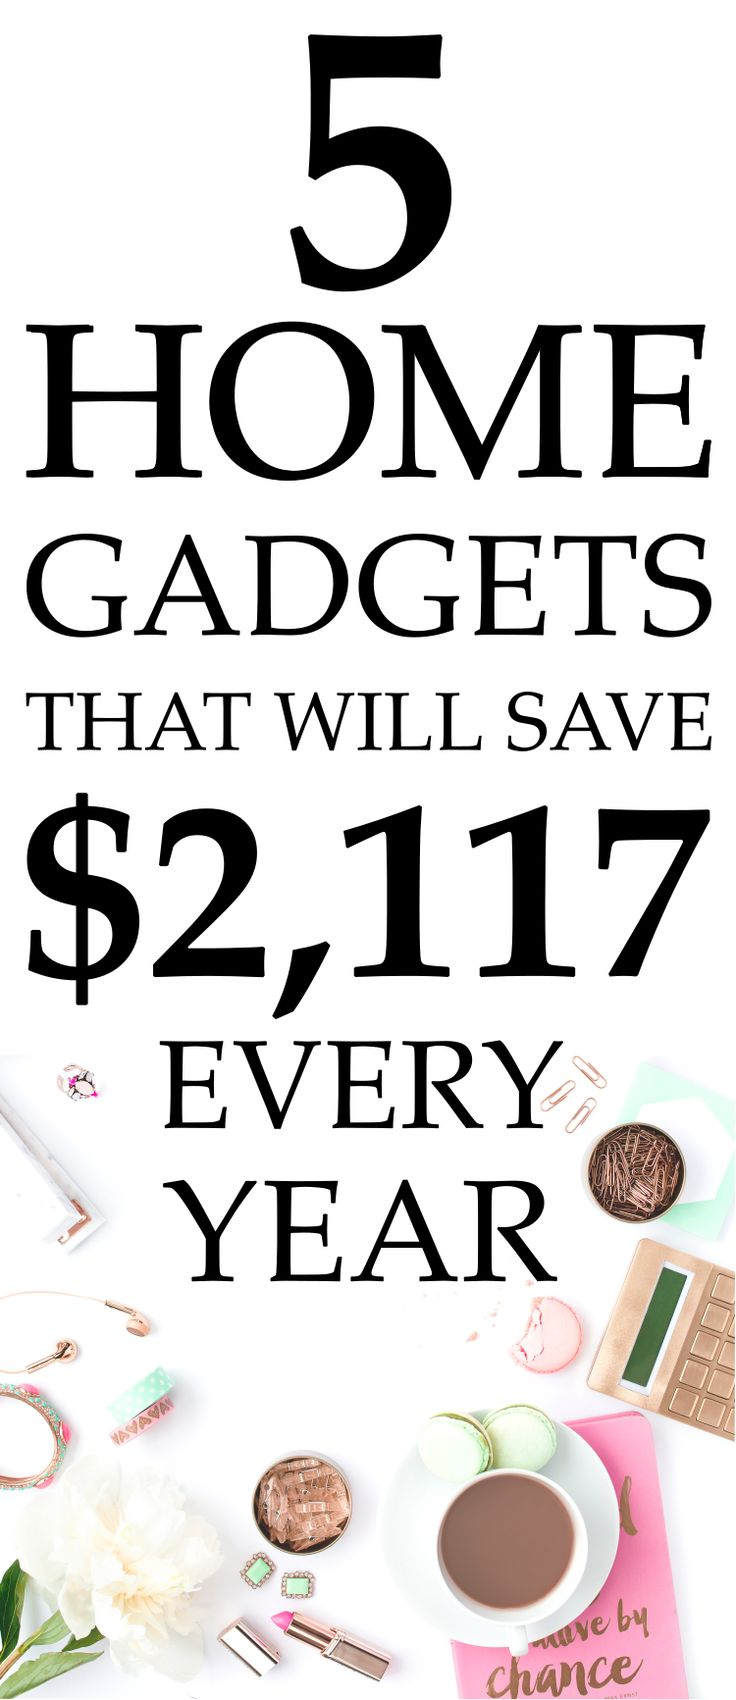 Smart home gadgets, how to save money, brita, save electricity, smart power strip, fluorescent light bulbs, efficient shower head, electricity usage meter, gadgets 2017 #smarthome